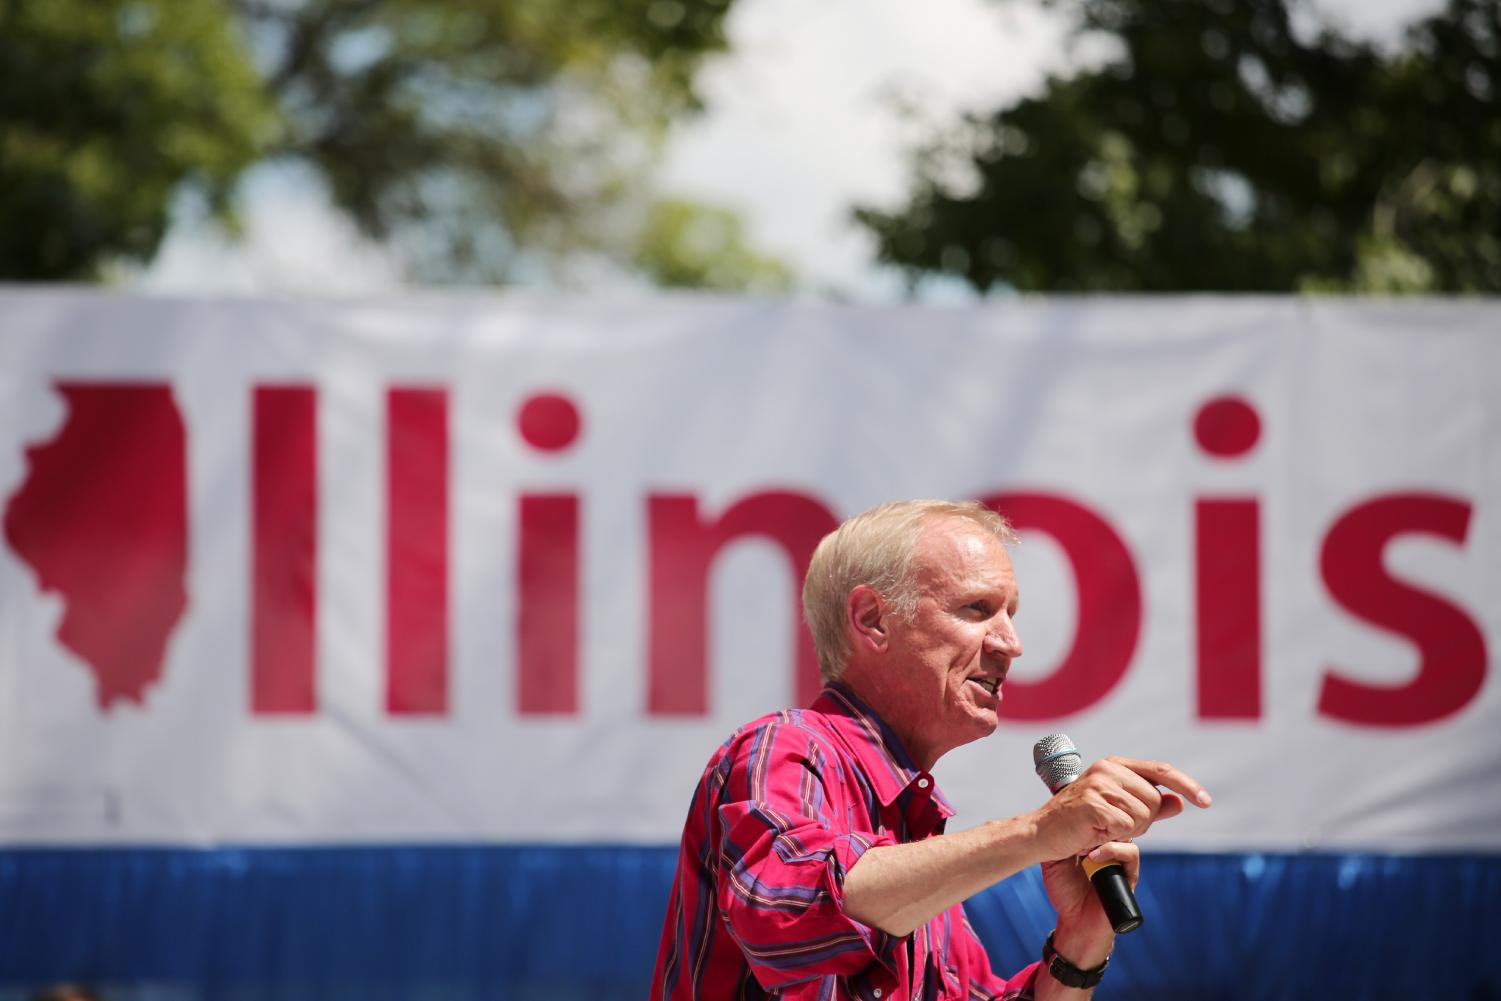 ov. Bruce Rauner delivered the annual budget address on Wednesday. Facing reelection, he proposed that the state no longer cover teacher pensions, instead shifting the burden to school districts. (Photo courtesy of Chicago Tribune)